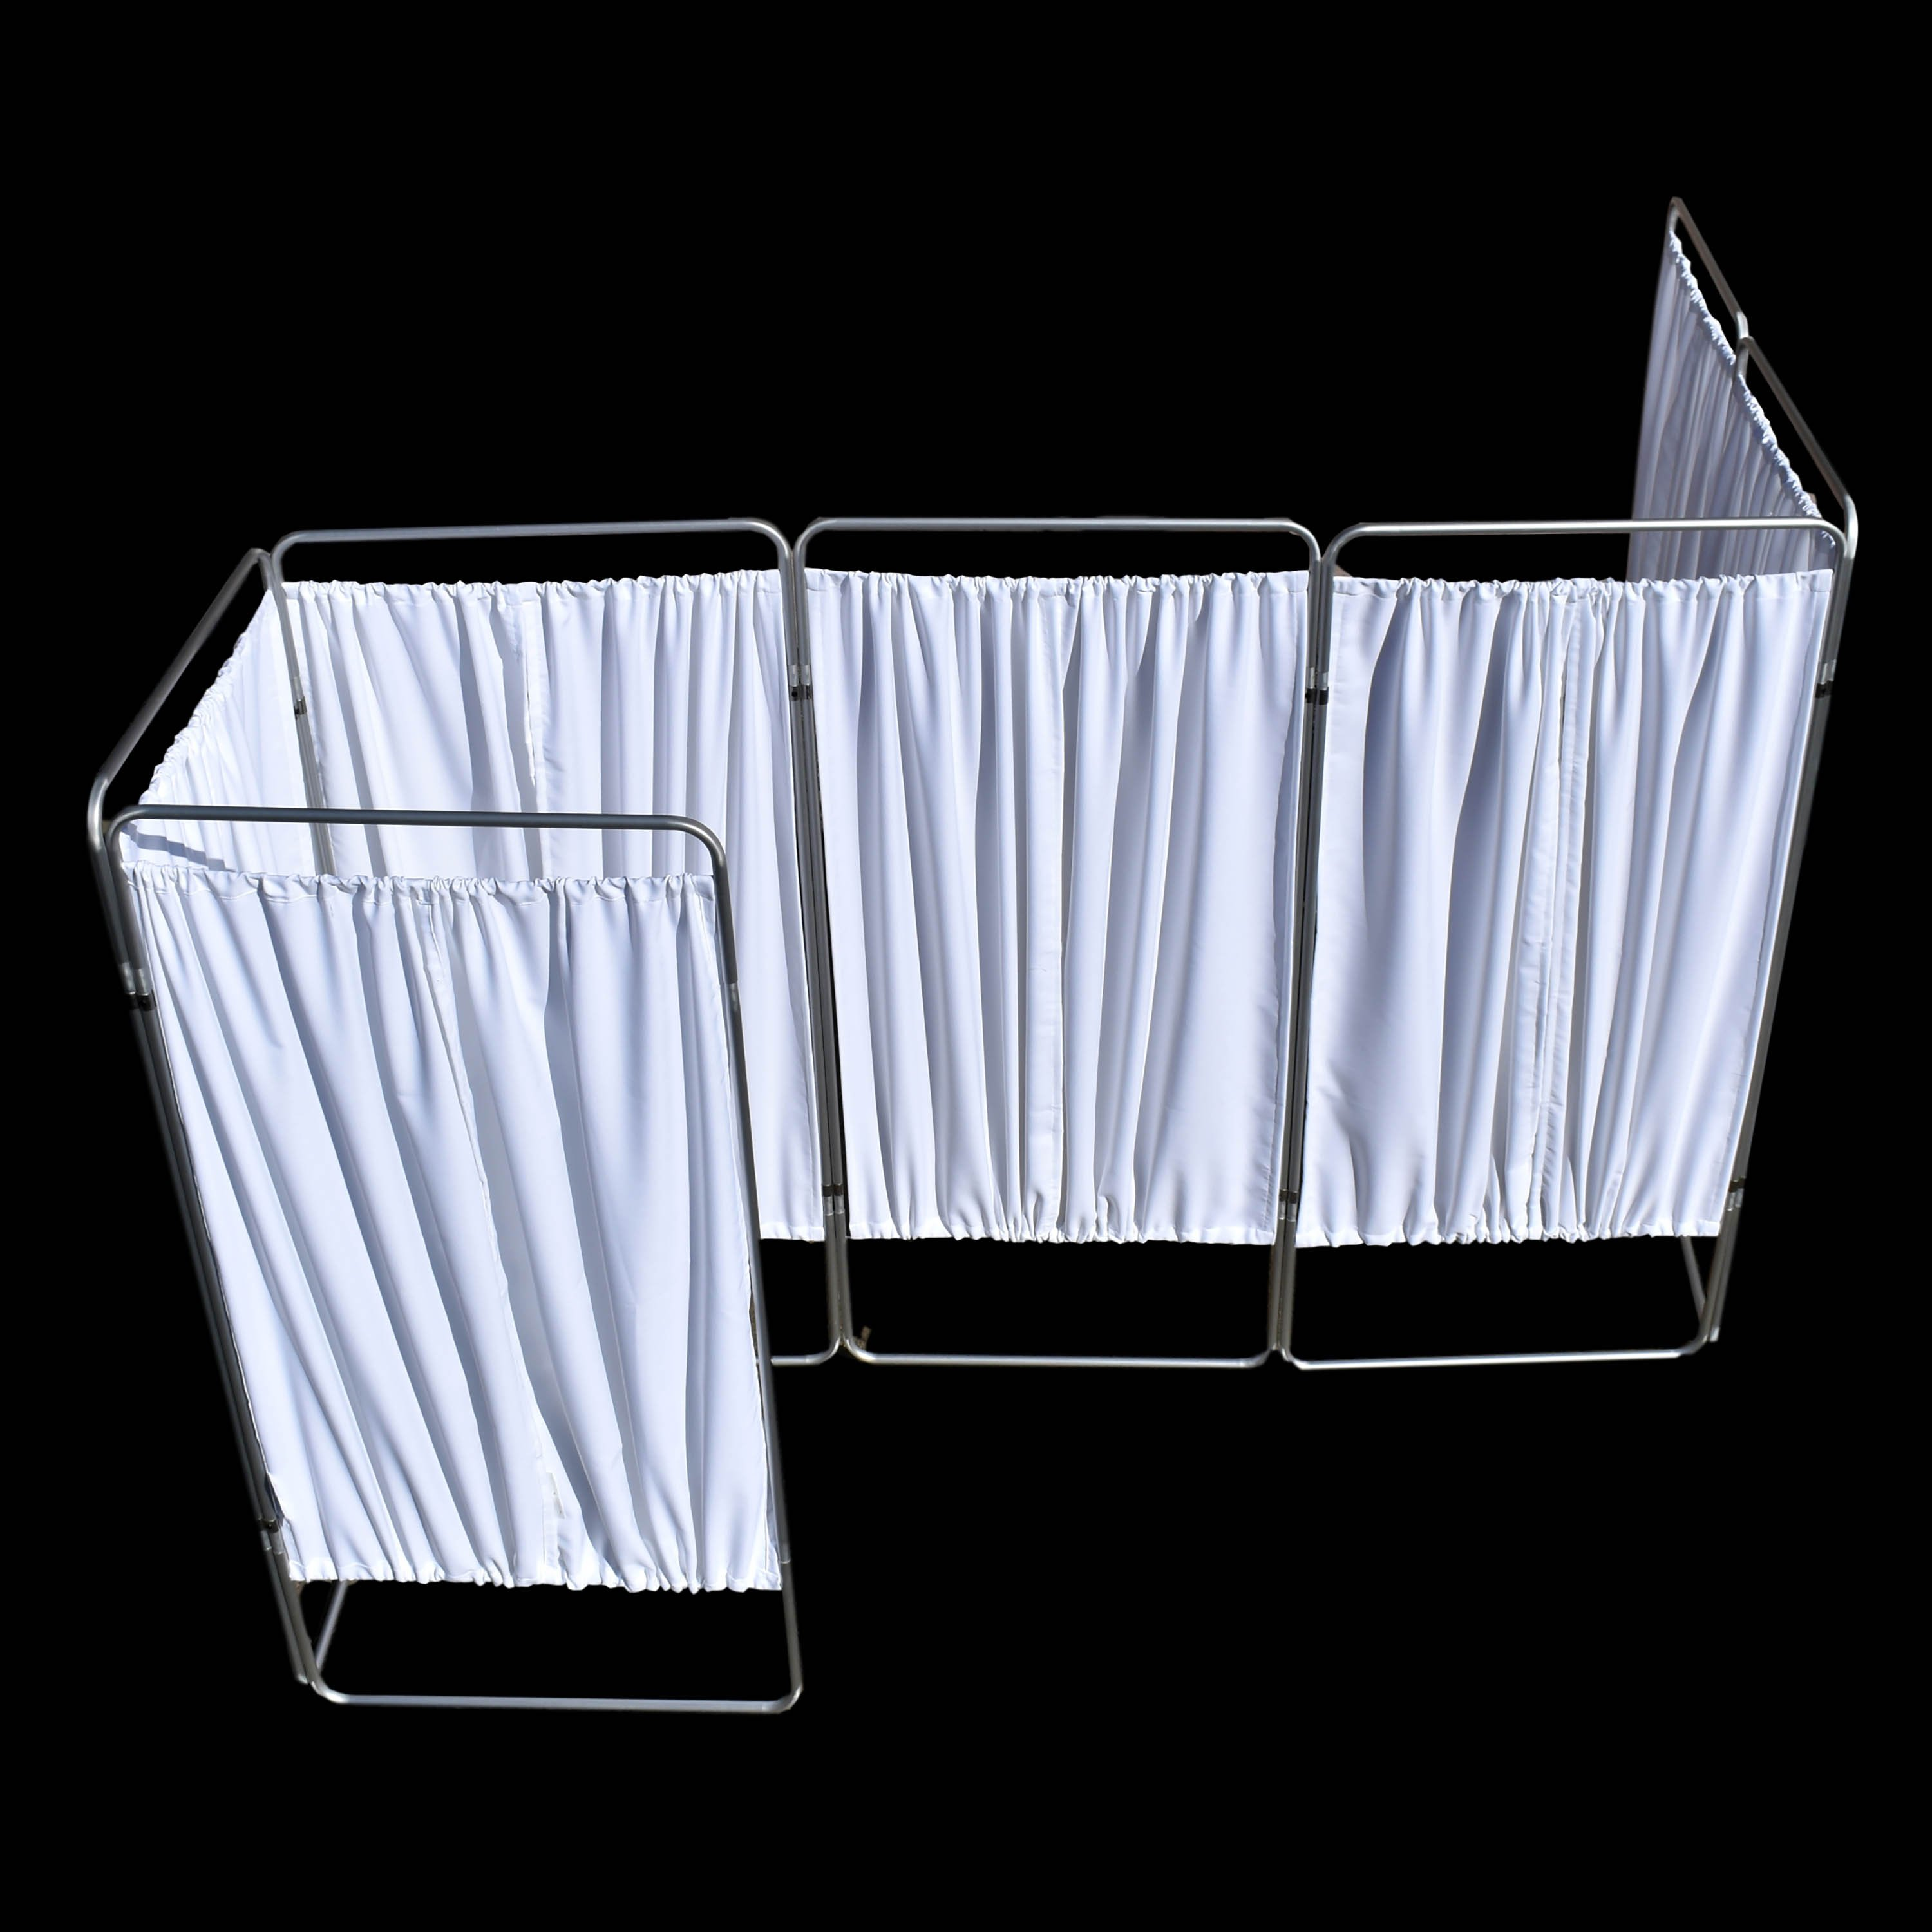 King Economy Privacy Screen with U-Hinge and White Vinyl Panel - 7 Section